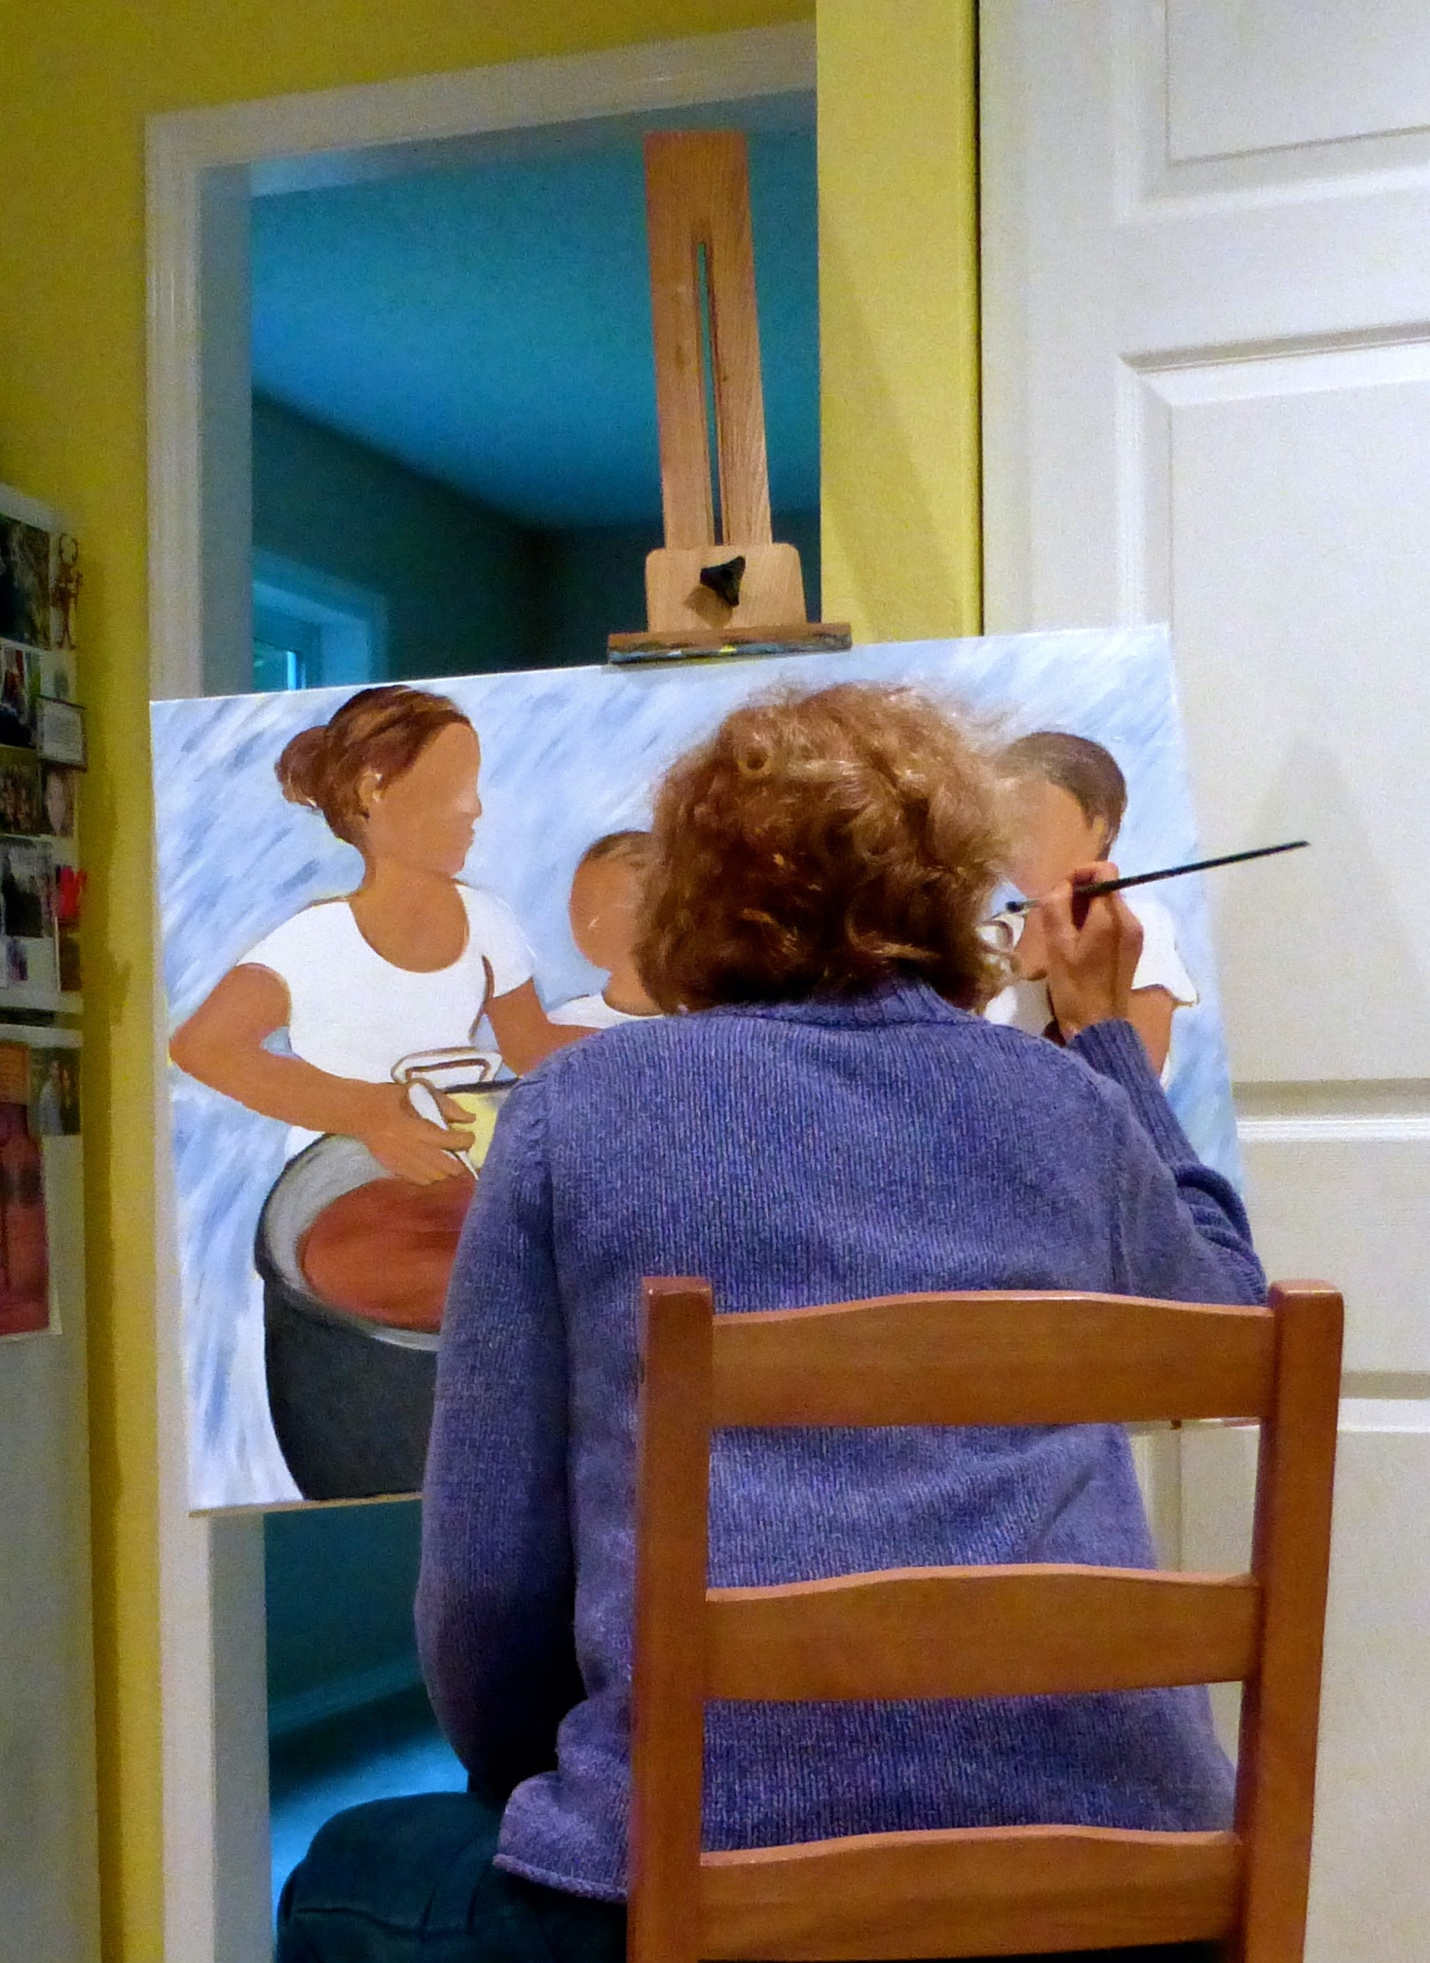 Painting, Painting, Painting!